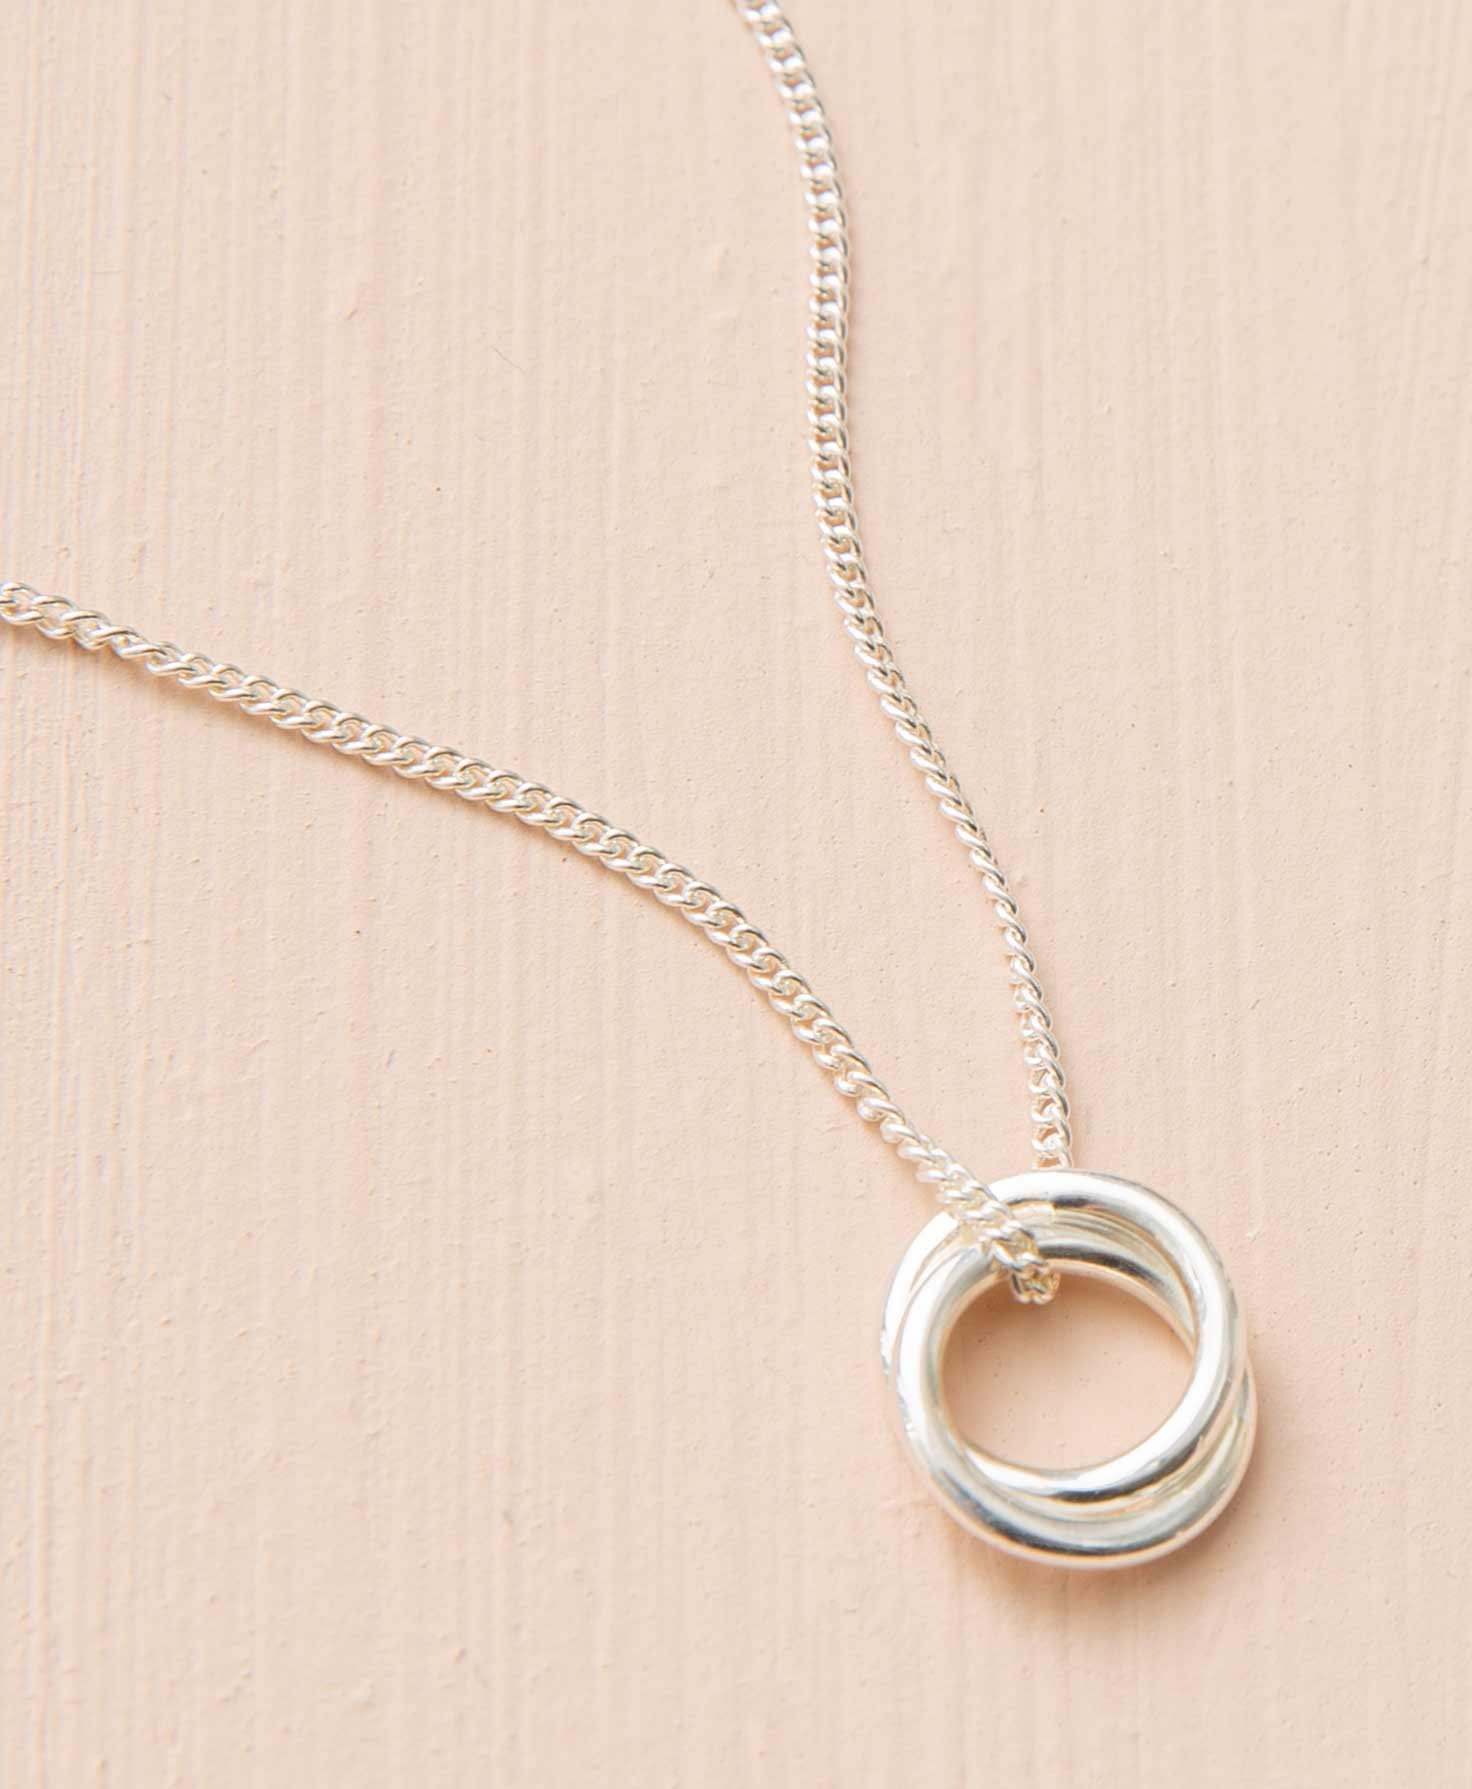 The Demi Knot Necklace lays on a peach background. It is a dainty necklace with a classic feel. Two interlocking circles formed from smooth sterling silver hang on a silver chain.